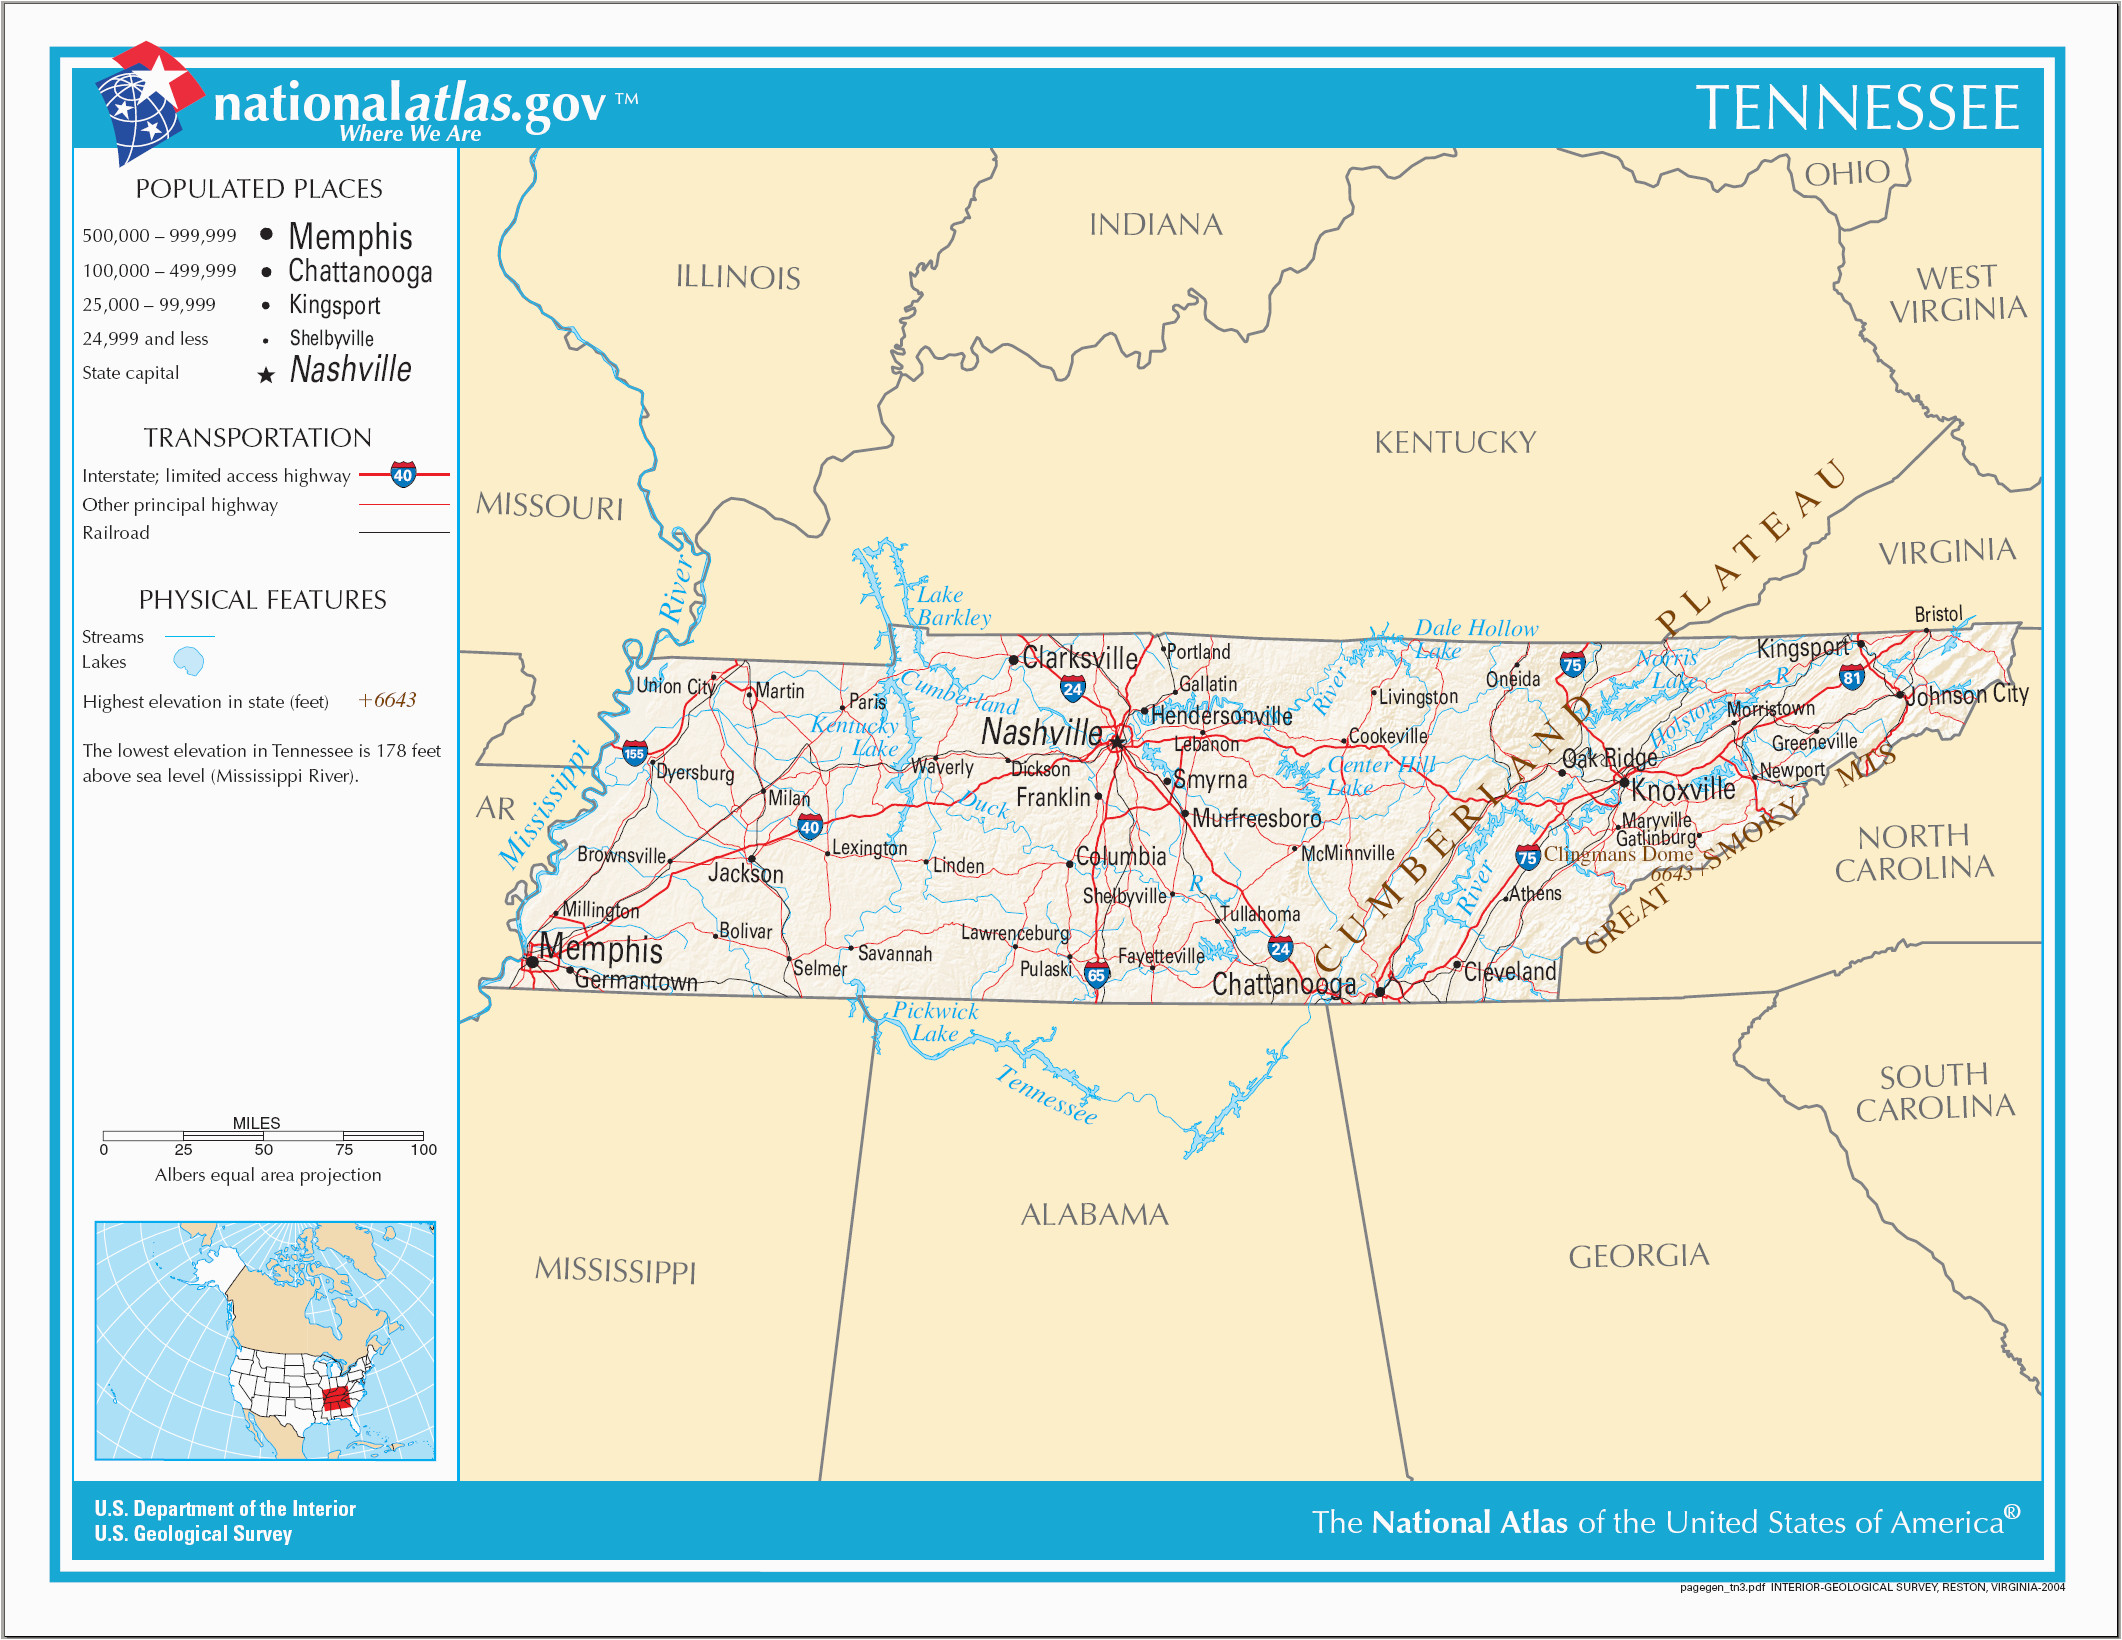 Map Of Gatlinburg Tennessee | secretmuseum Map Gatlinburg on tennessee map, city map, sevierville map, catlettsburg map, south fulton map, mascot map, pigeon forge map, tellico map, red boiling springs map, monteagle map, dollywood map, gleason map, hardin valley map, st. augustine map, oliver springs map, rockwood map, east knoxville map, penang hotel map, alum cave map, cades cove map,